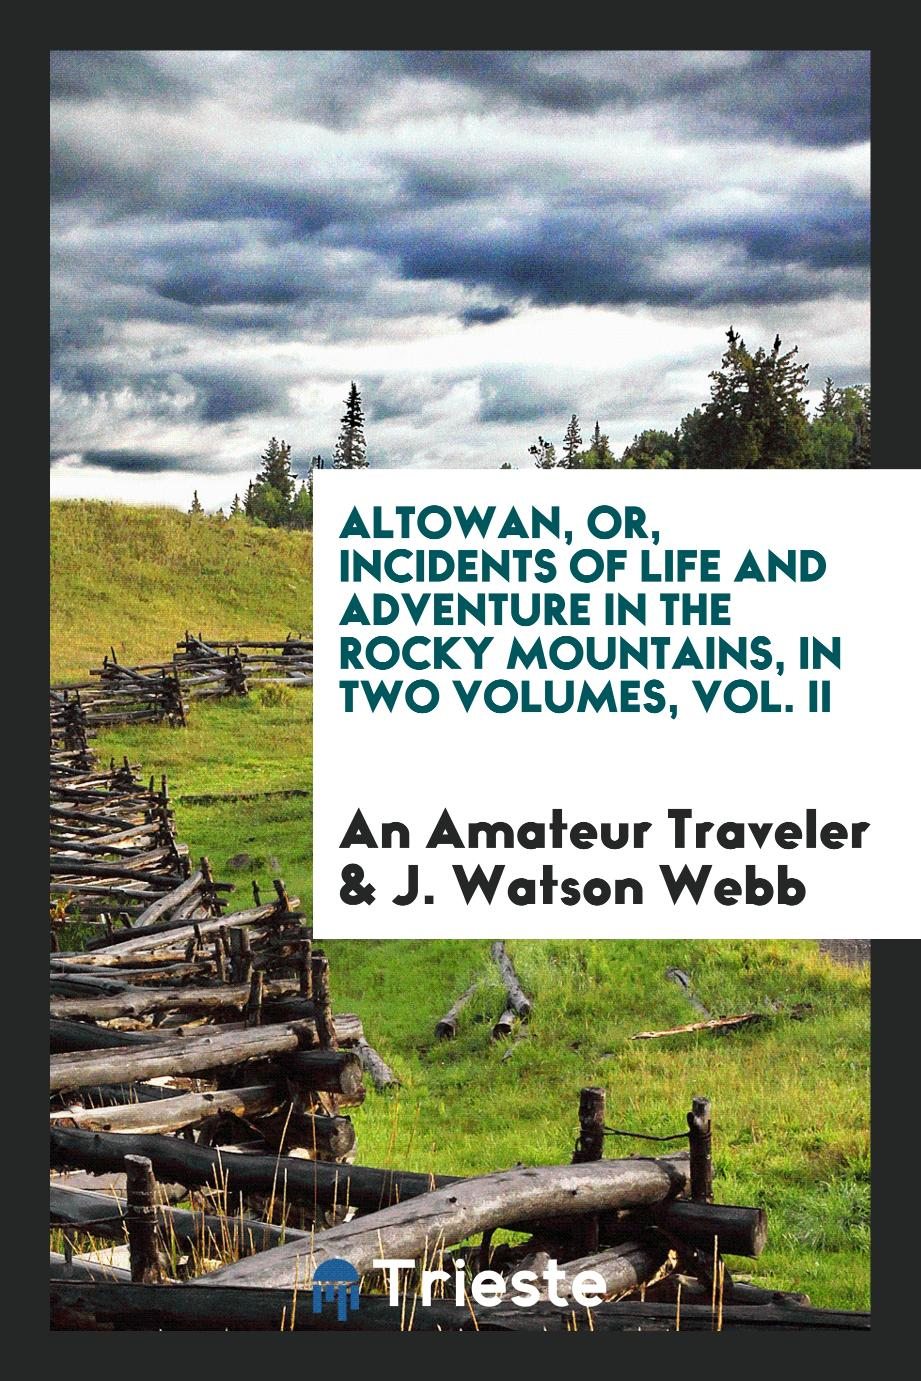 Altowan, or, Incidents of life and adventure in the Rocky Mountains, in two volumes, Vol. II